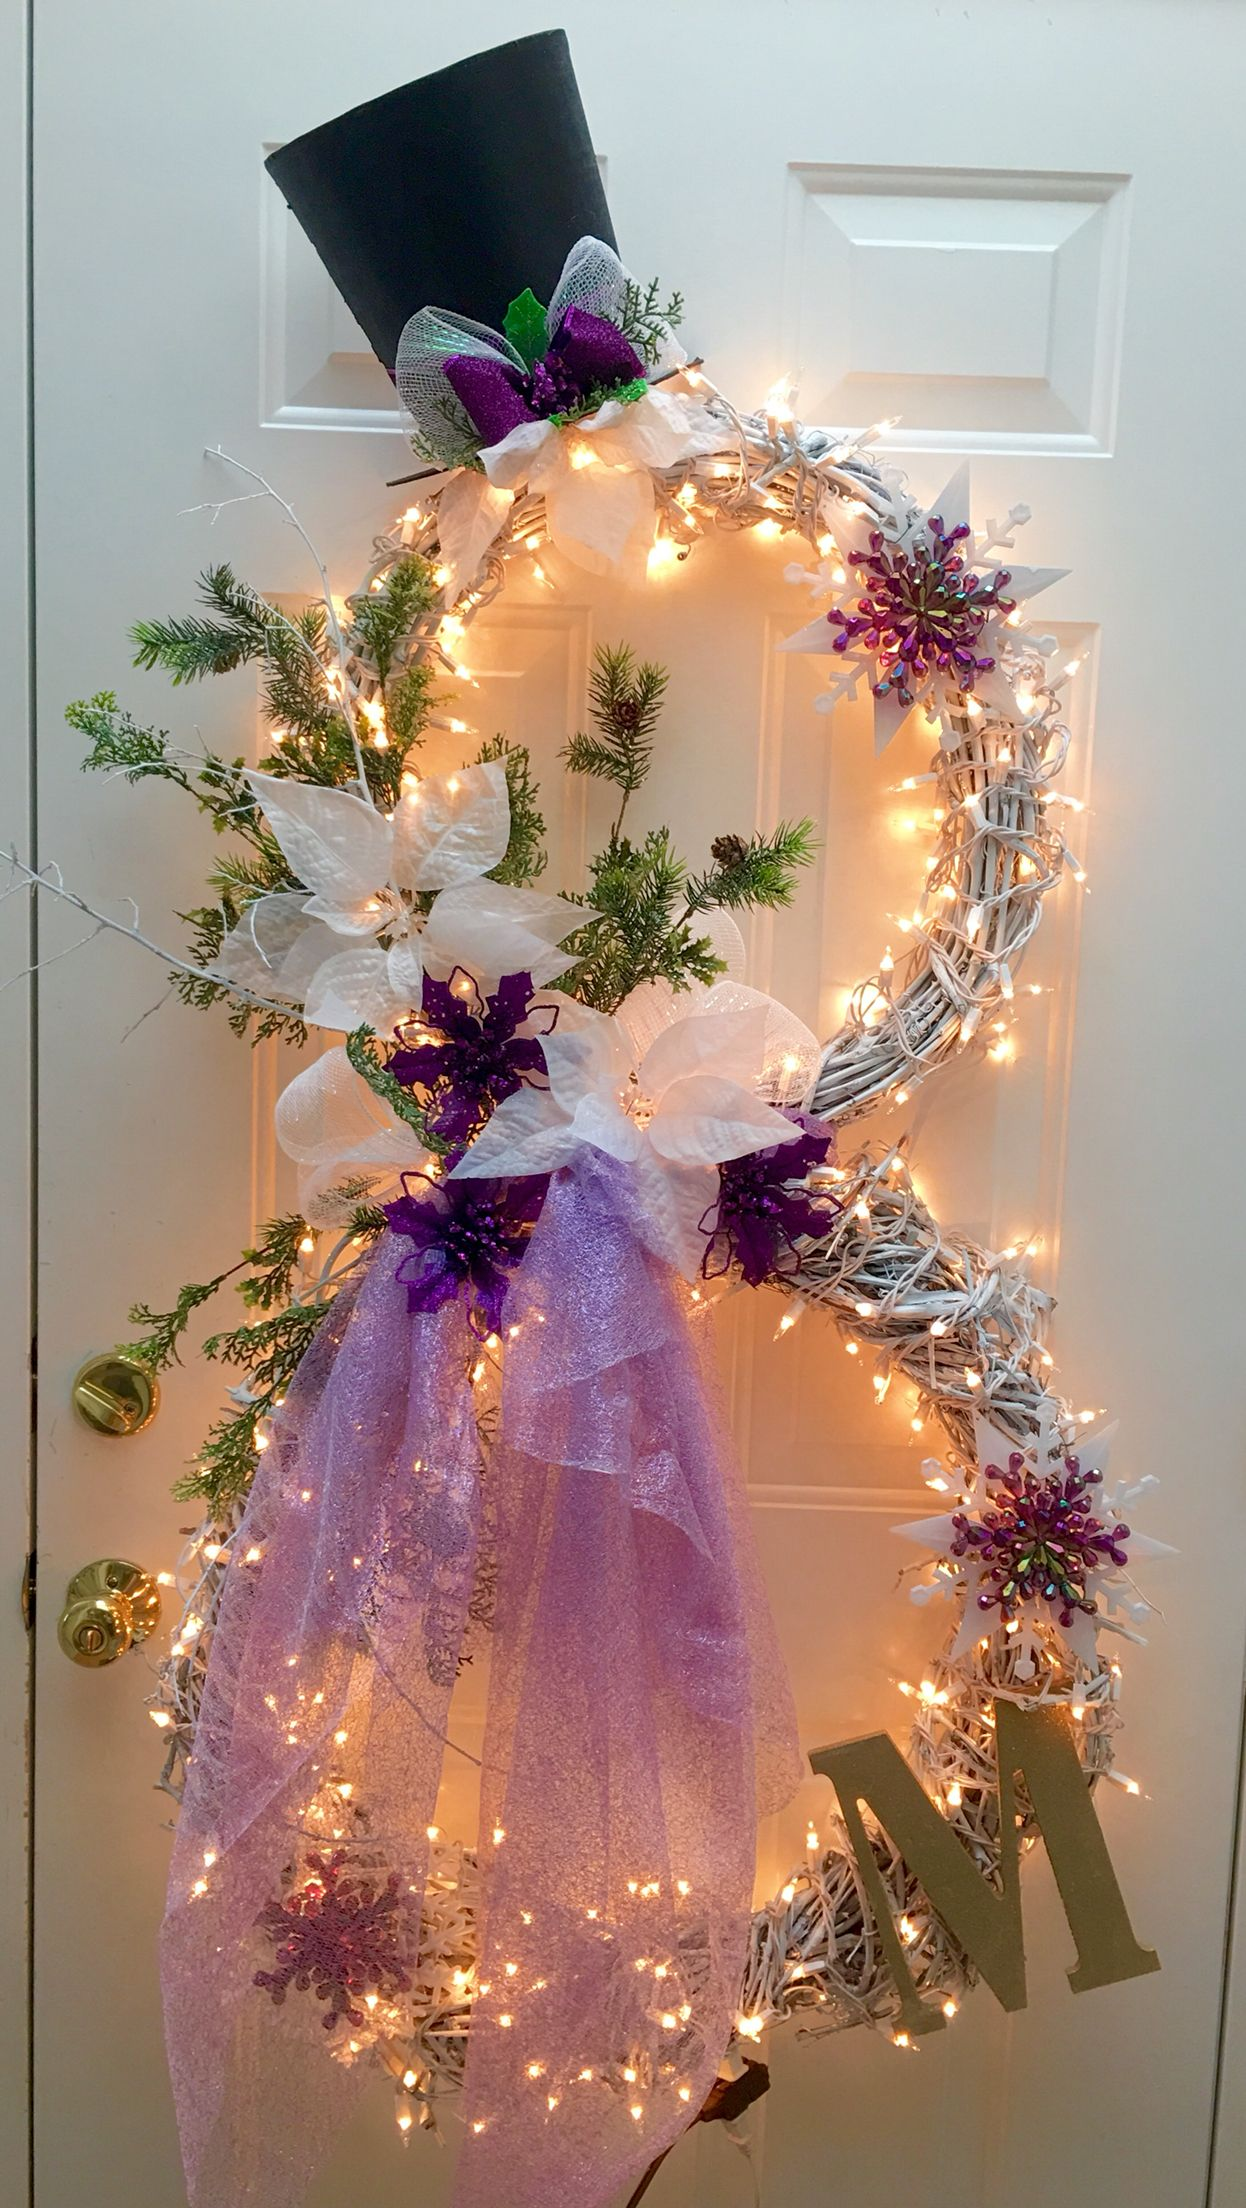 Fiber optic christmas snowman wreath decoration - Find This Pin And More On Christmas Ideas My Version Of A Snowman Wreath